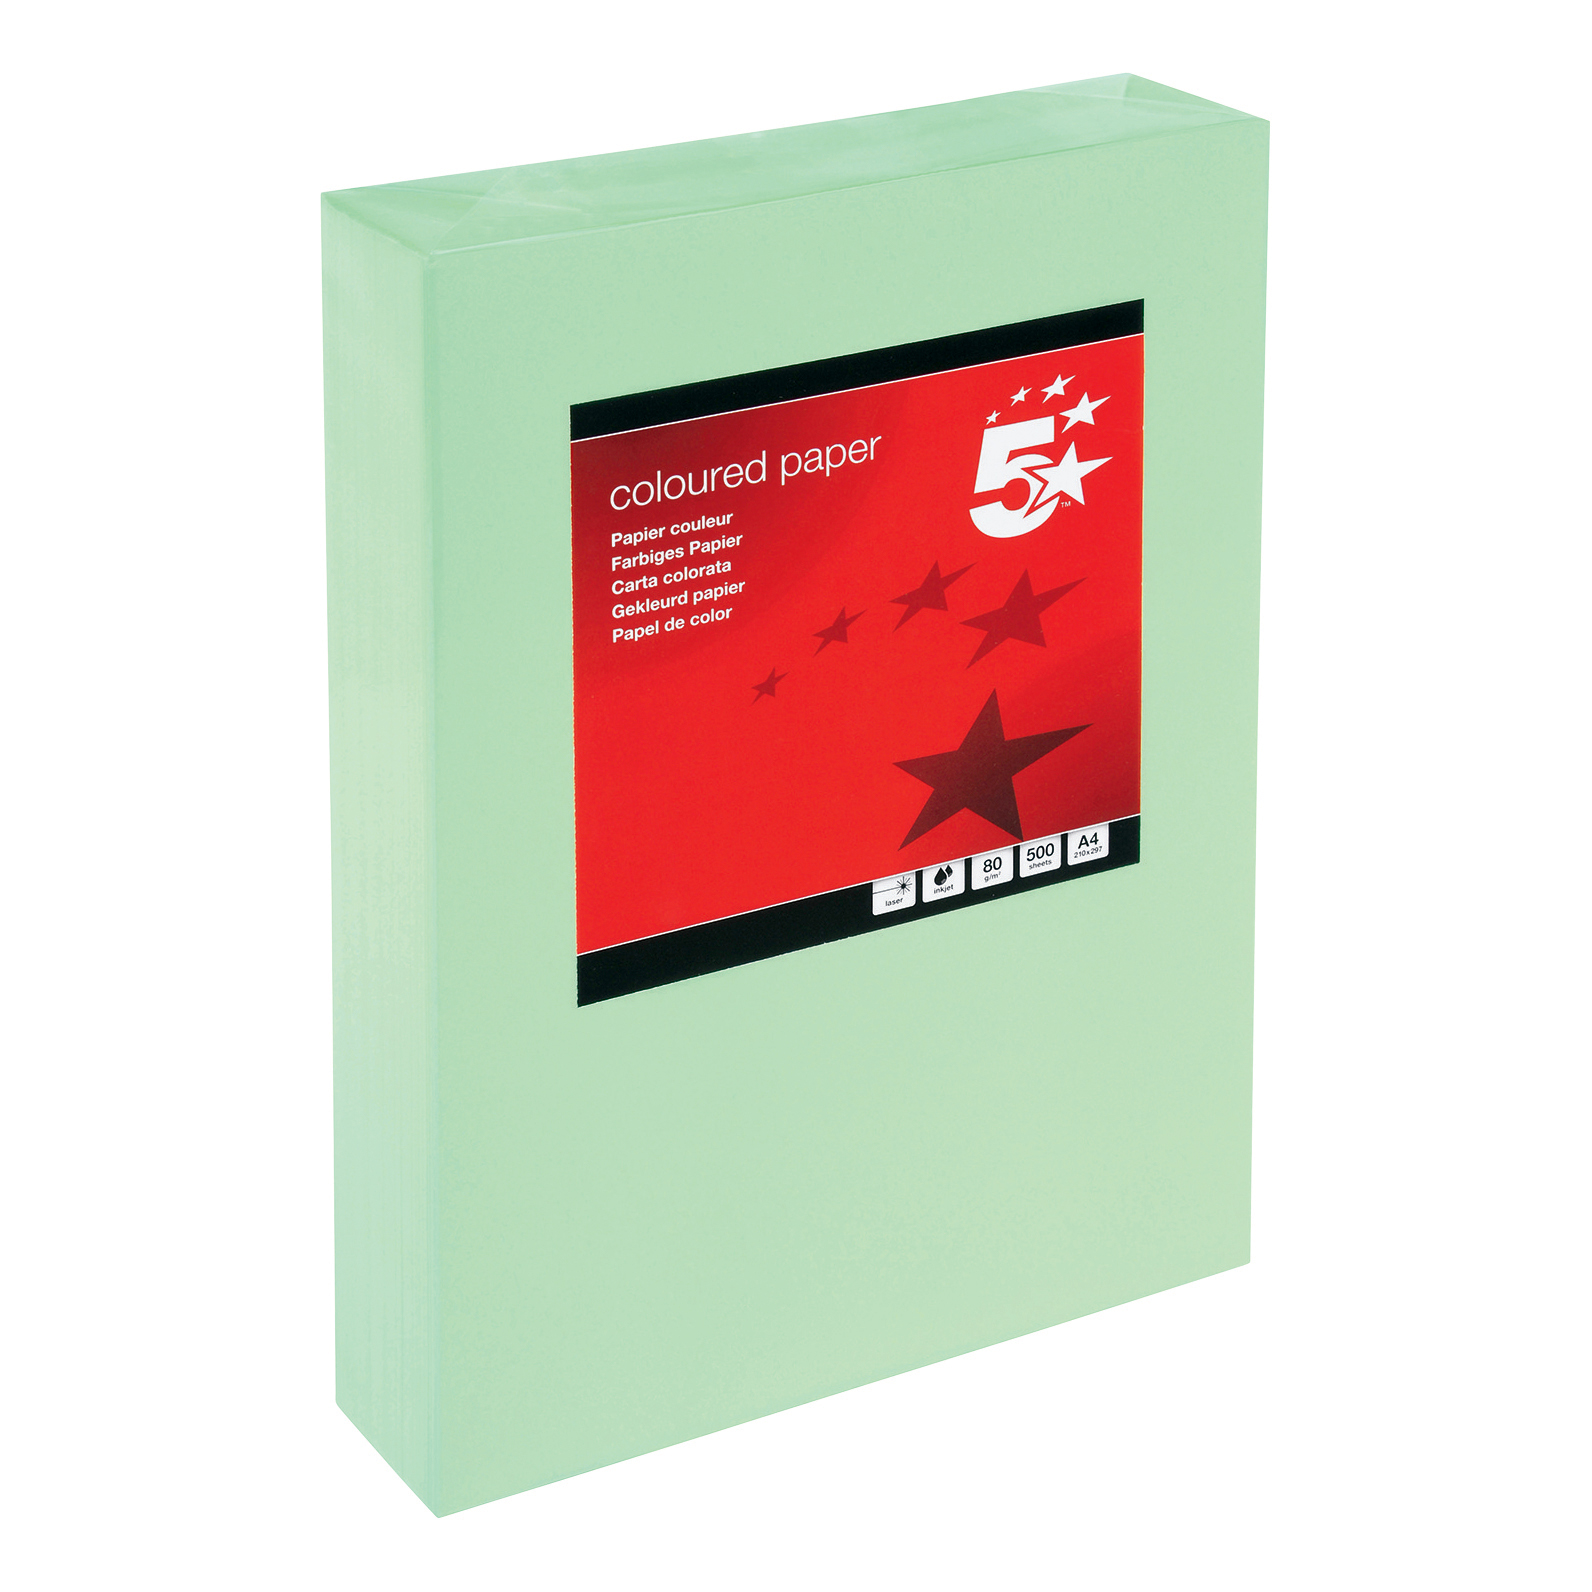 5 Star Office Coloured Copier Paper Multifunctional Ream-Wrapped 80gsm A4 Medium Green 500 Sheets